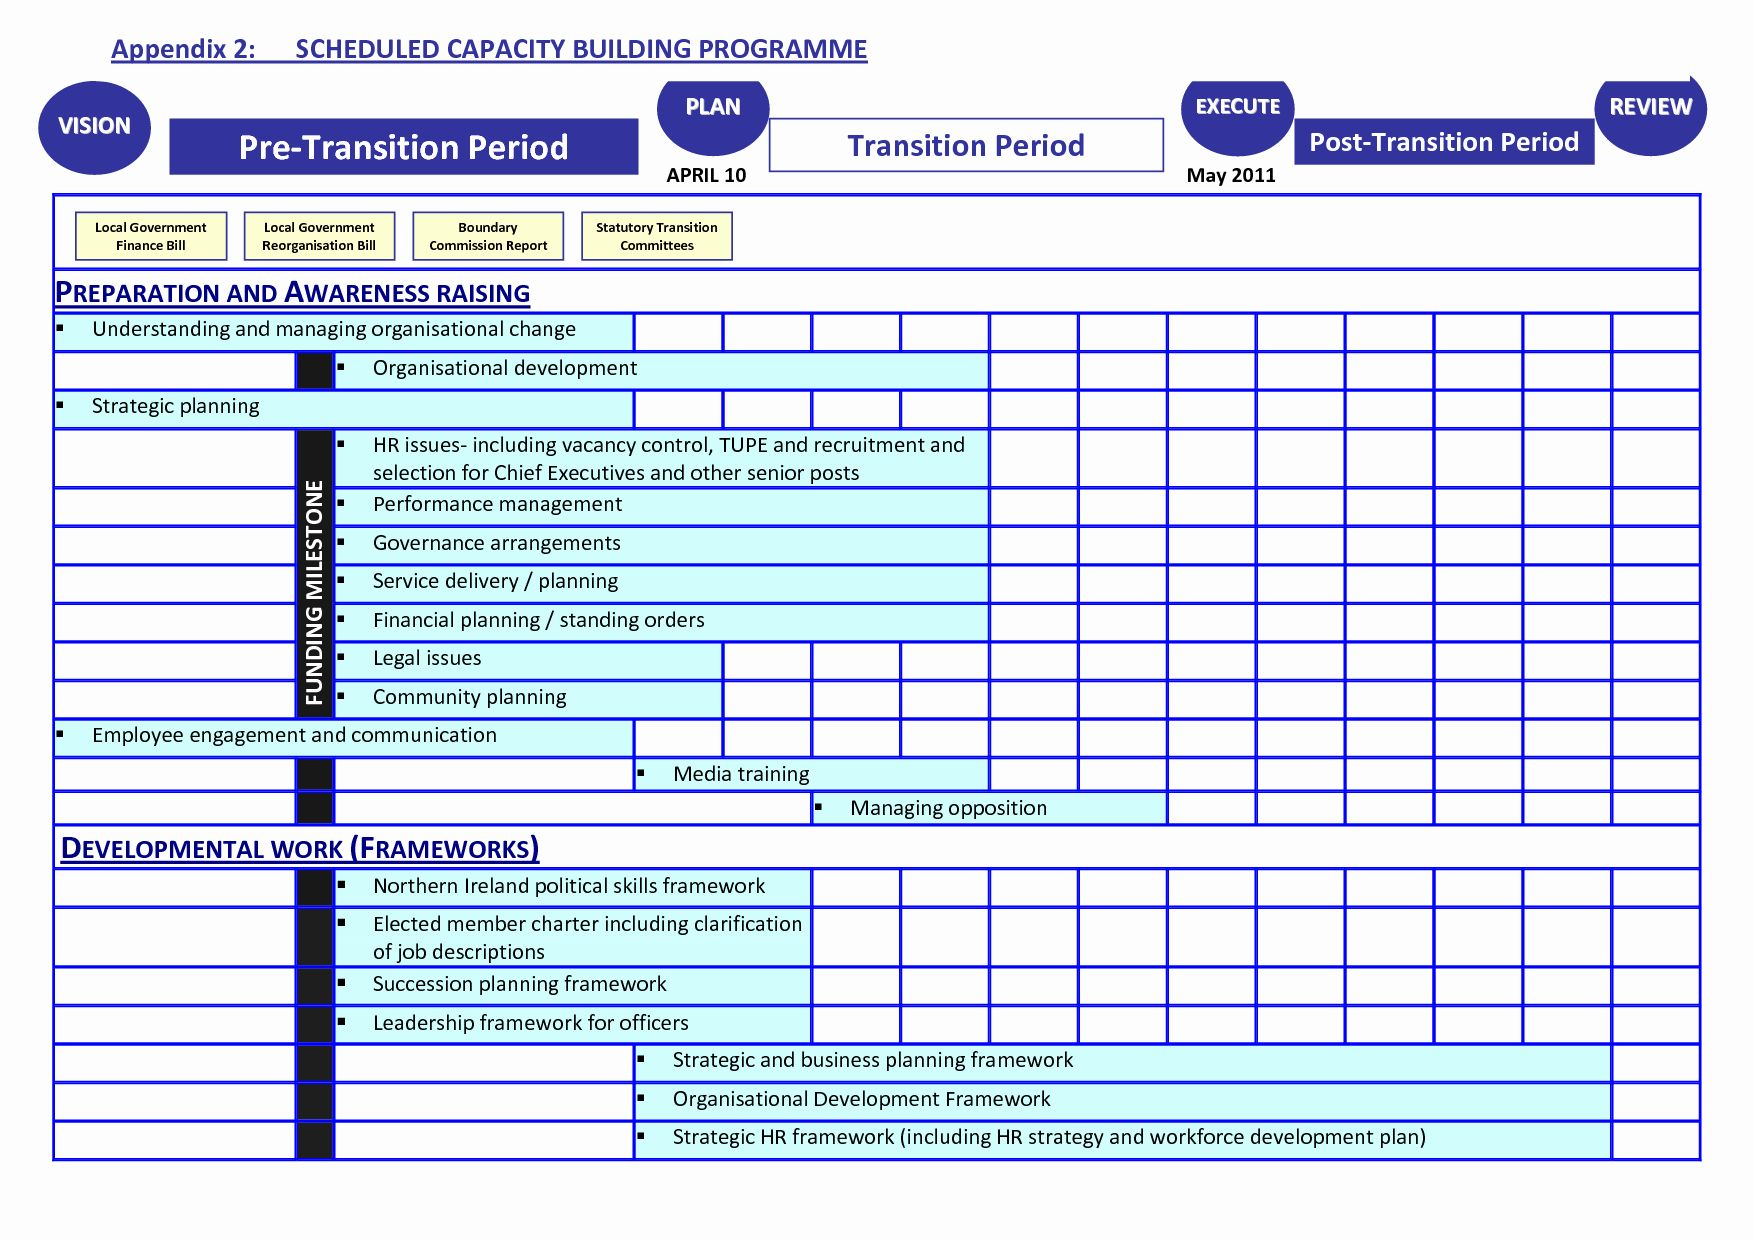 Business Transition Plan Template Lovely Transition Plan Template Business Plan Template How To Plan Simple Business Plan Template Project transition plan template excel